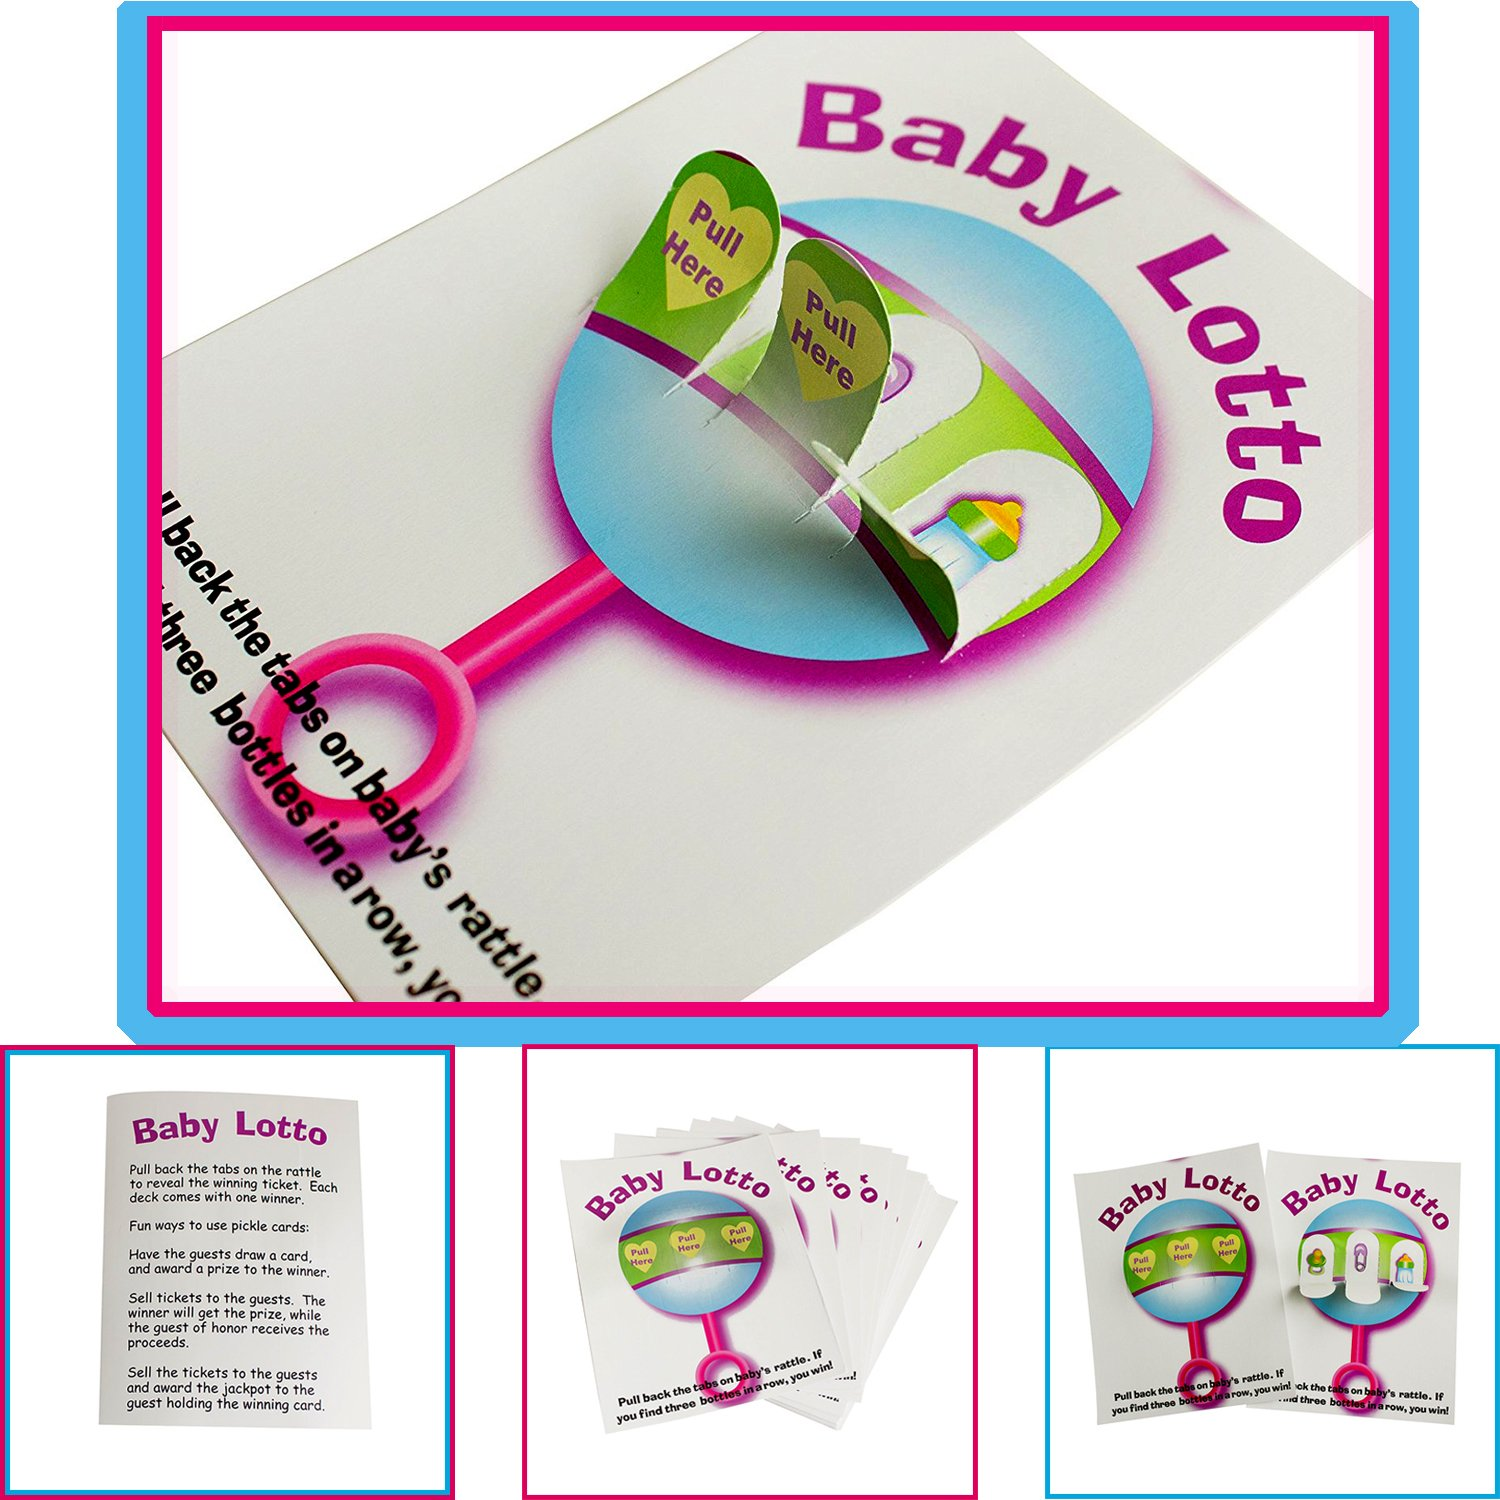 Adorox Baby Shower Party Game (Pin the Bottle or Pacifier on the Baby) Poster (1pkg) (Pin the Bottle (1 pk)) ADX252_FBA